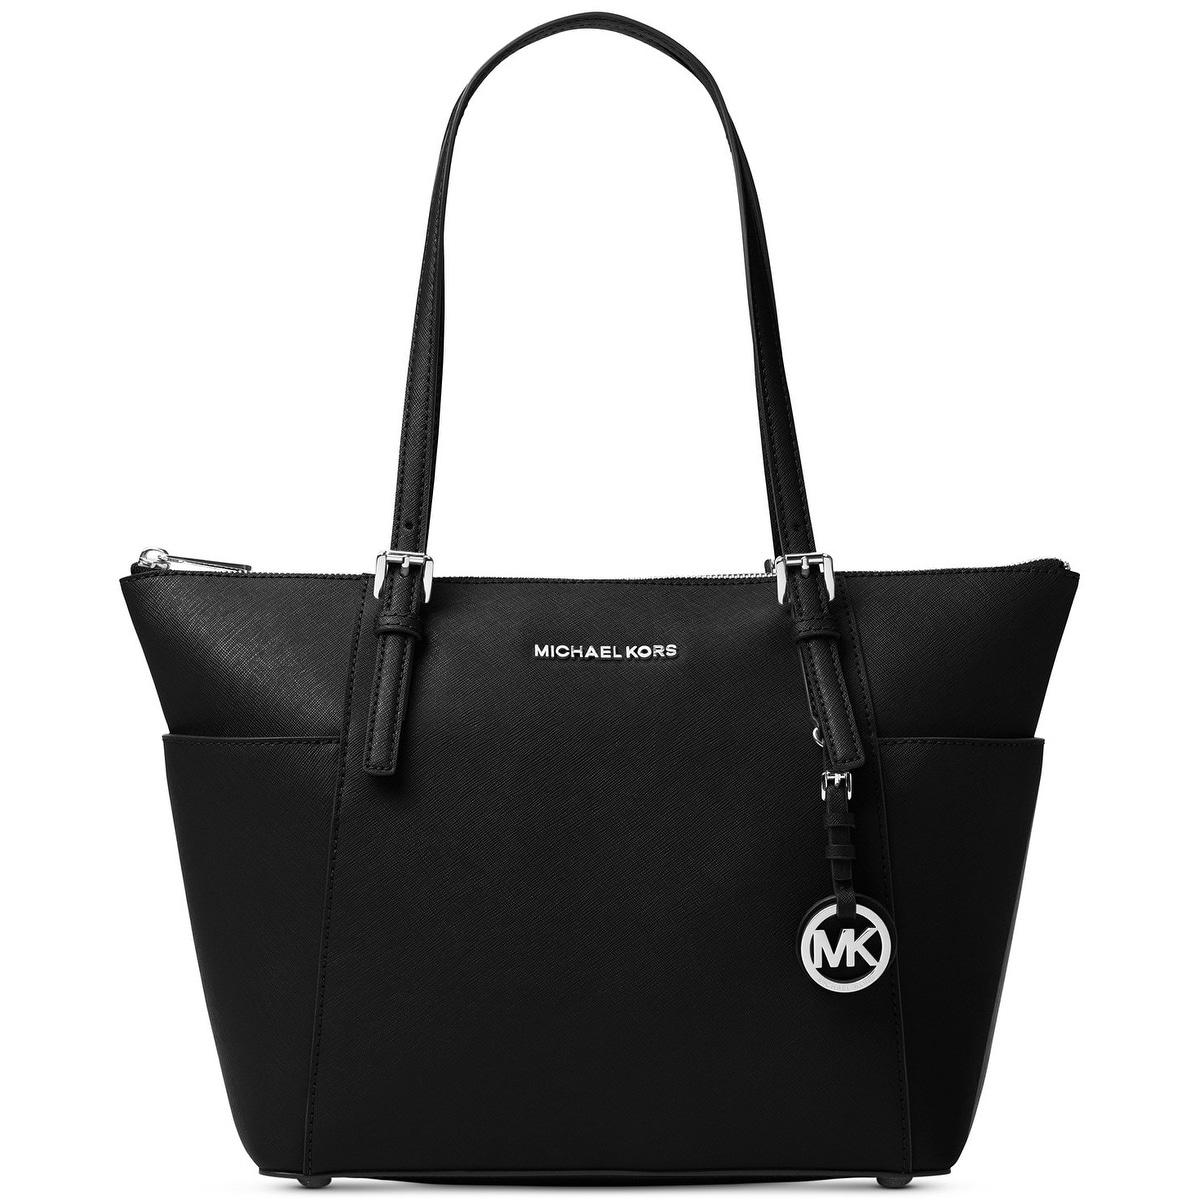 5d4cfe7c4048 Michael Kors Handbags